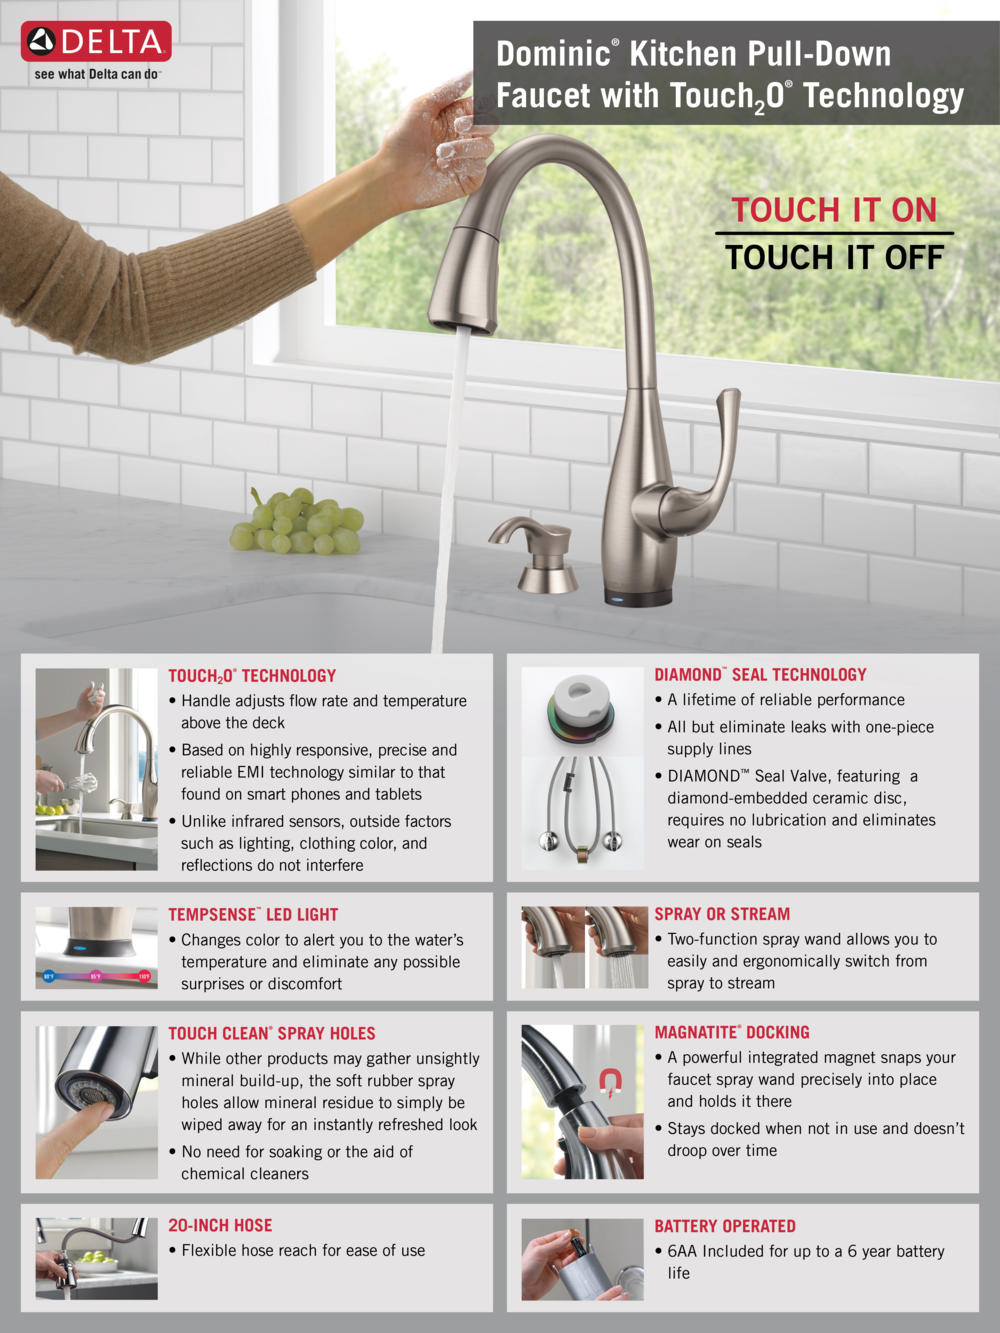 Home Depot Delta Faucet Touch2O Kitchen Infographic